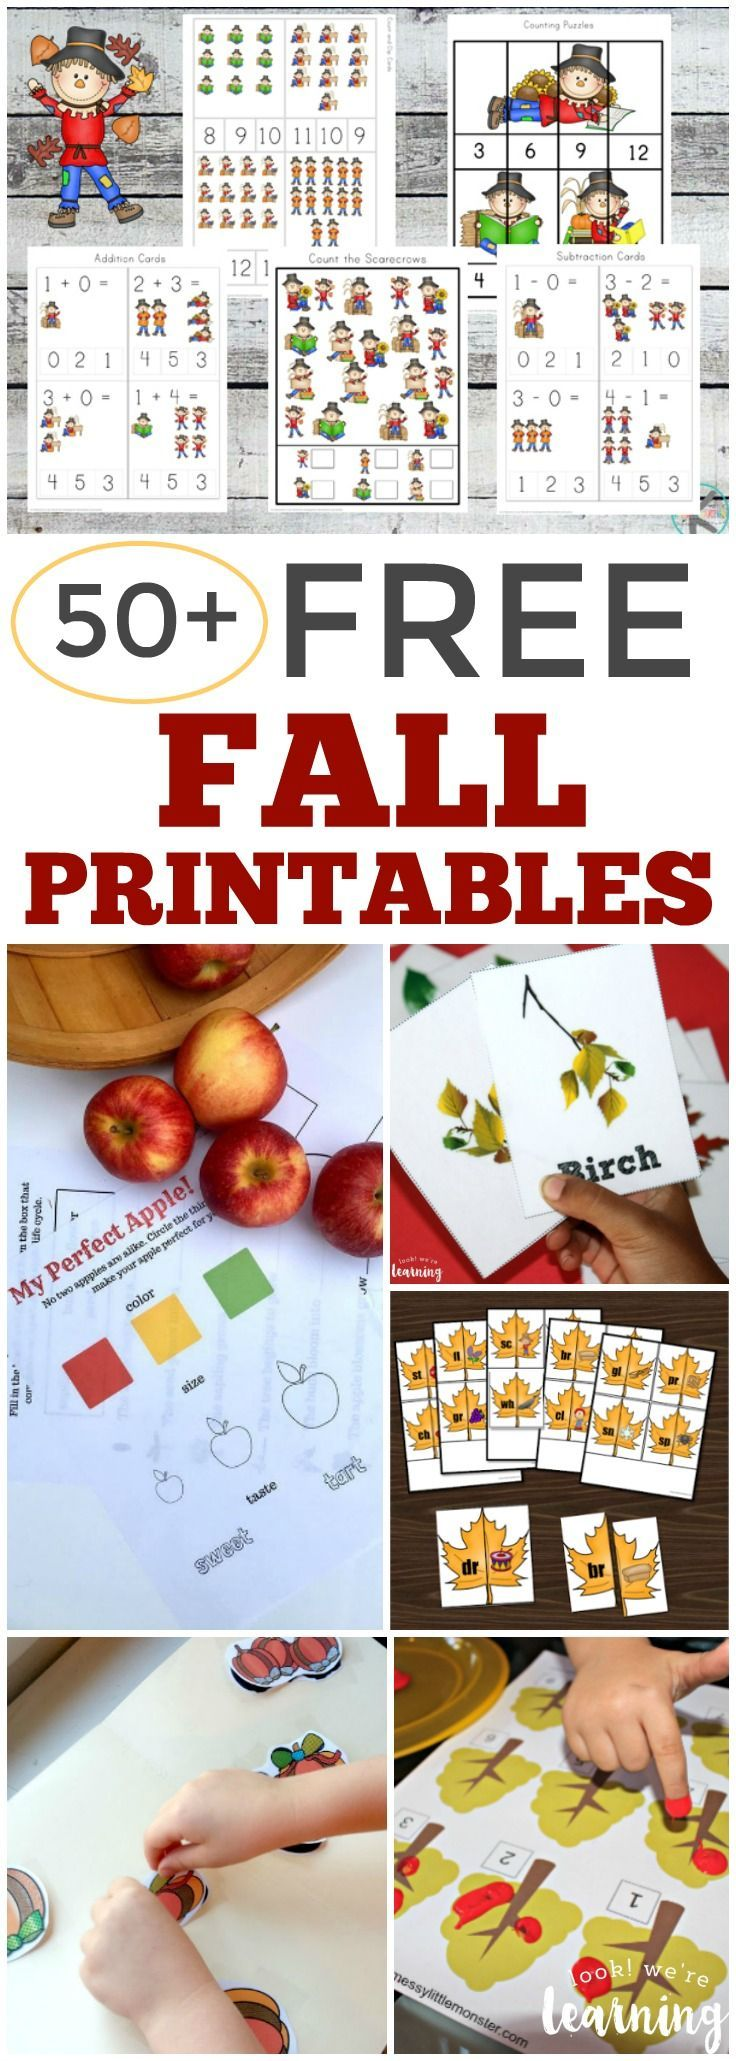 Over 50 Free Fall Printables for Kids - www.lookwerelearning.com   plenty of fall learning ideas, fall activities for kids, and fall worksheets for autumn fun!